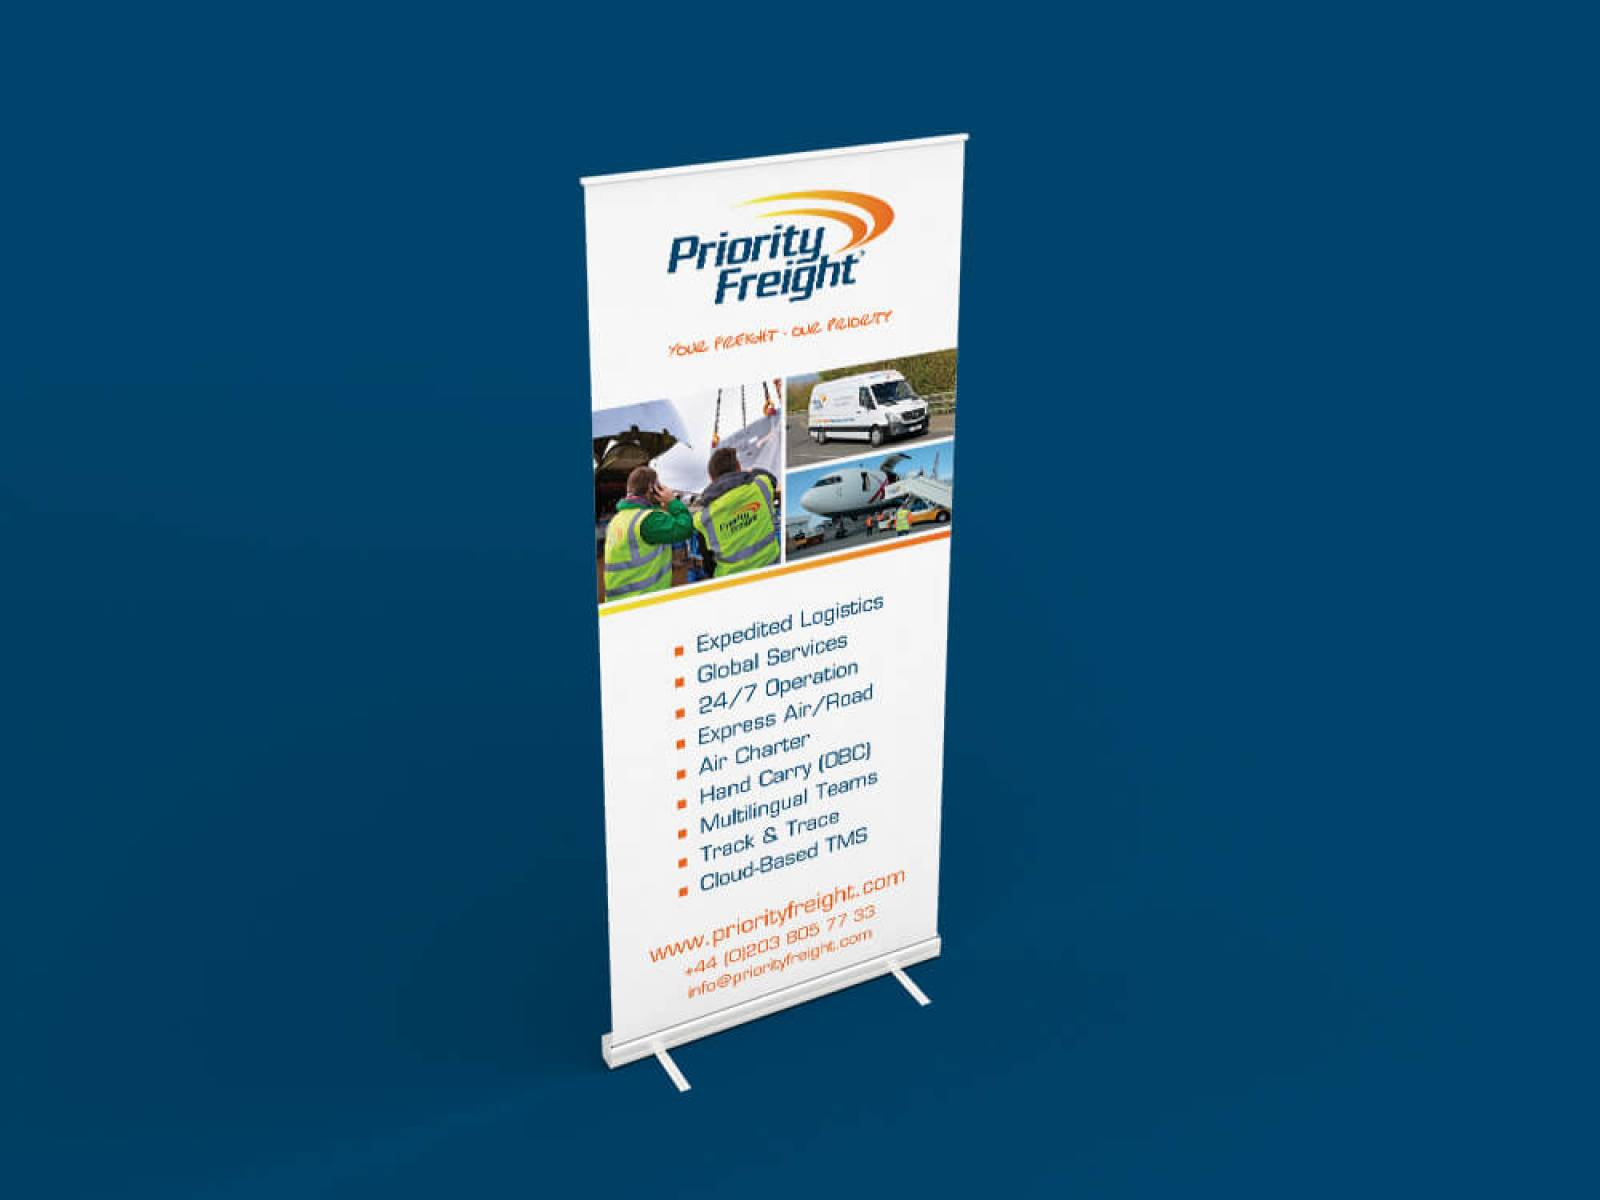 Exhibition-Priority-Freight-roll-up-banner-design-agency-graphic-design-canterbury.jpg